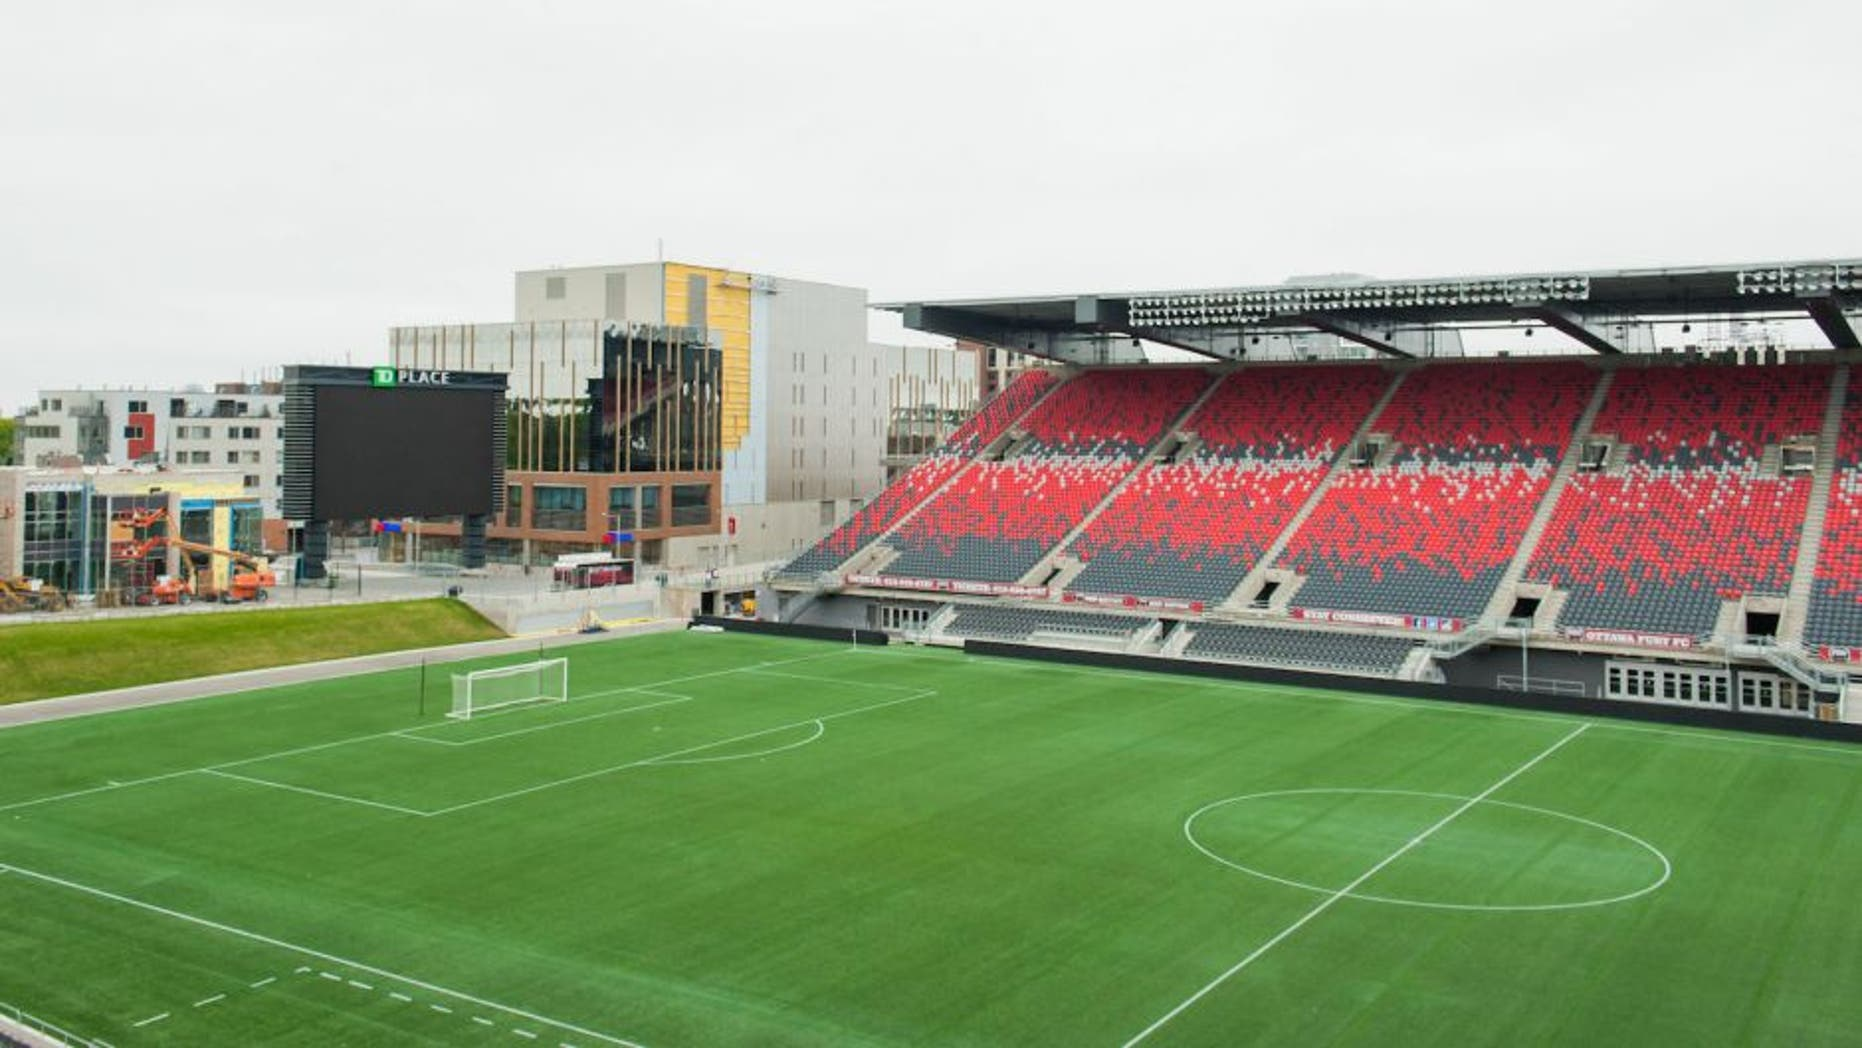 May 10, 2015; Ottawa, Ontario, Canada; TD Place Stadium is the home of the Ottawa Fury and will be the venue used for the FIFA Women's World Cup throughout the month of June 2015. Mandatory Credit: Marc DesRosiers-USA TODAY Sports